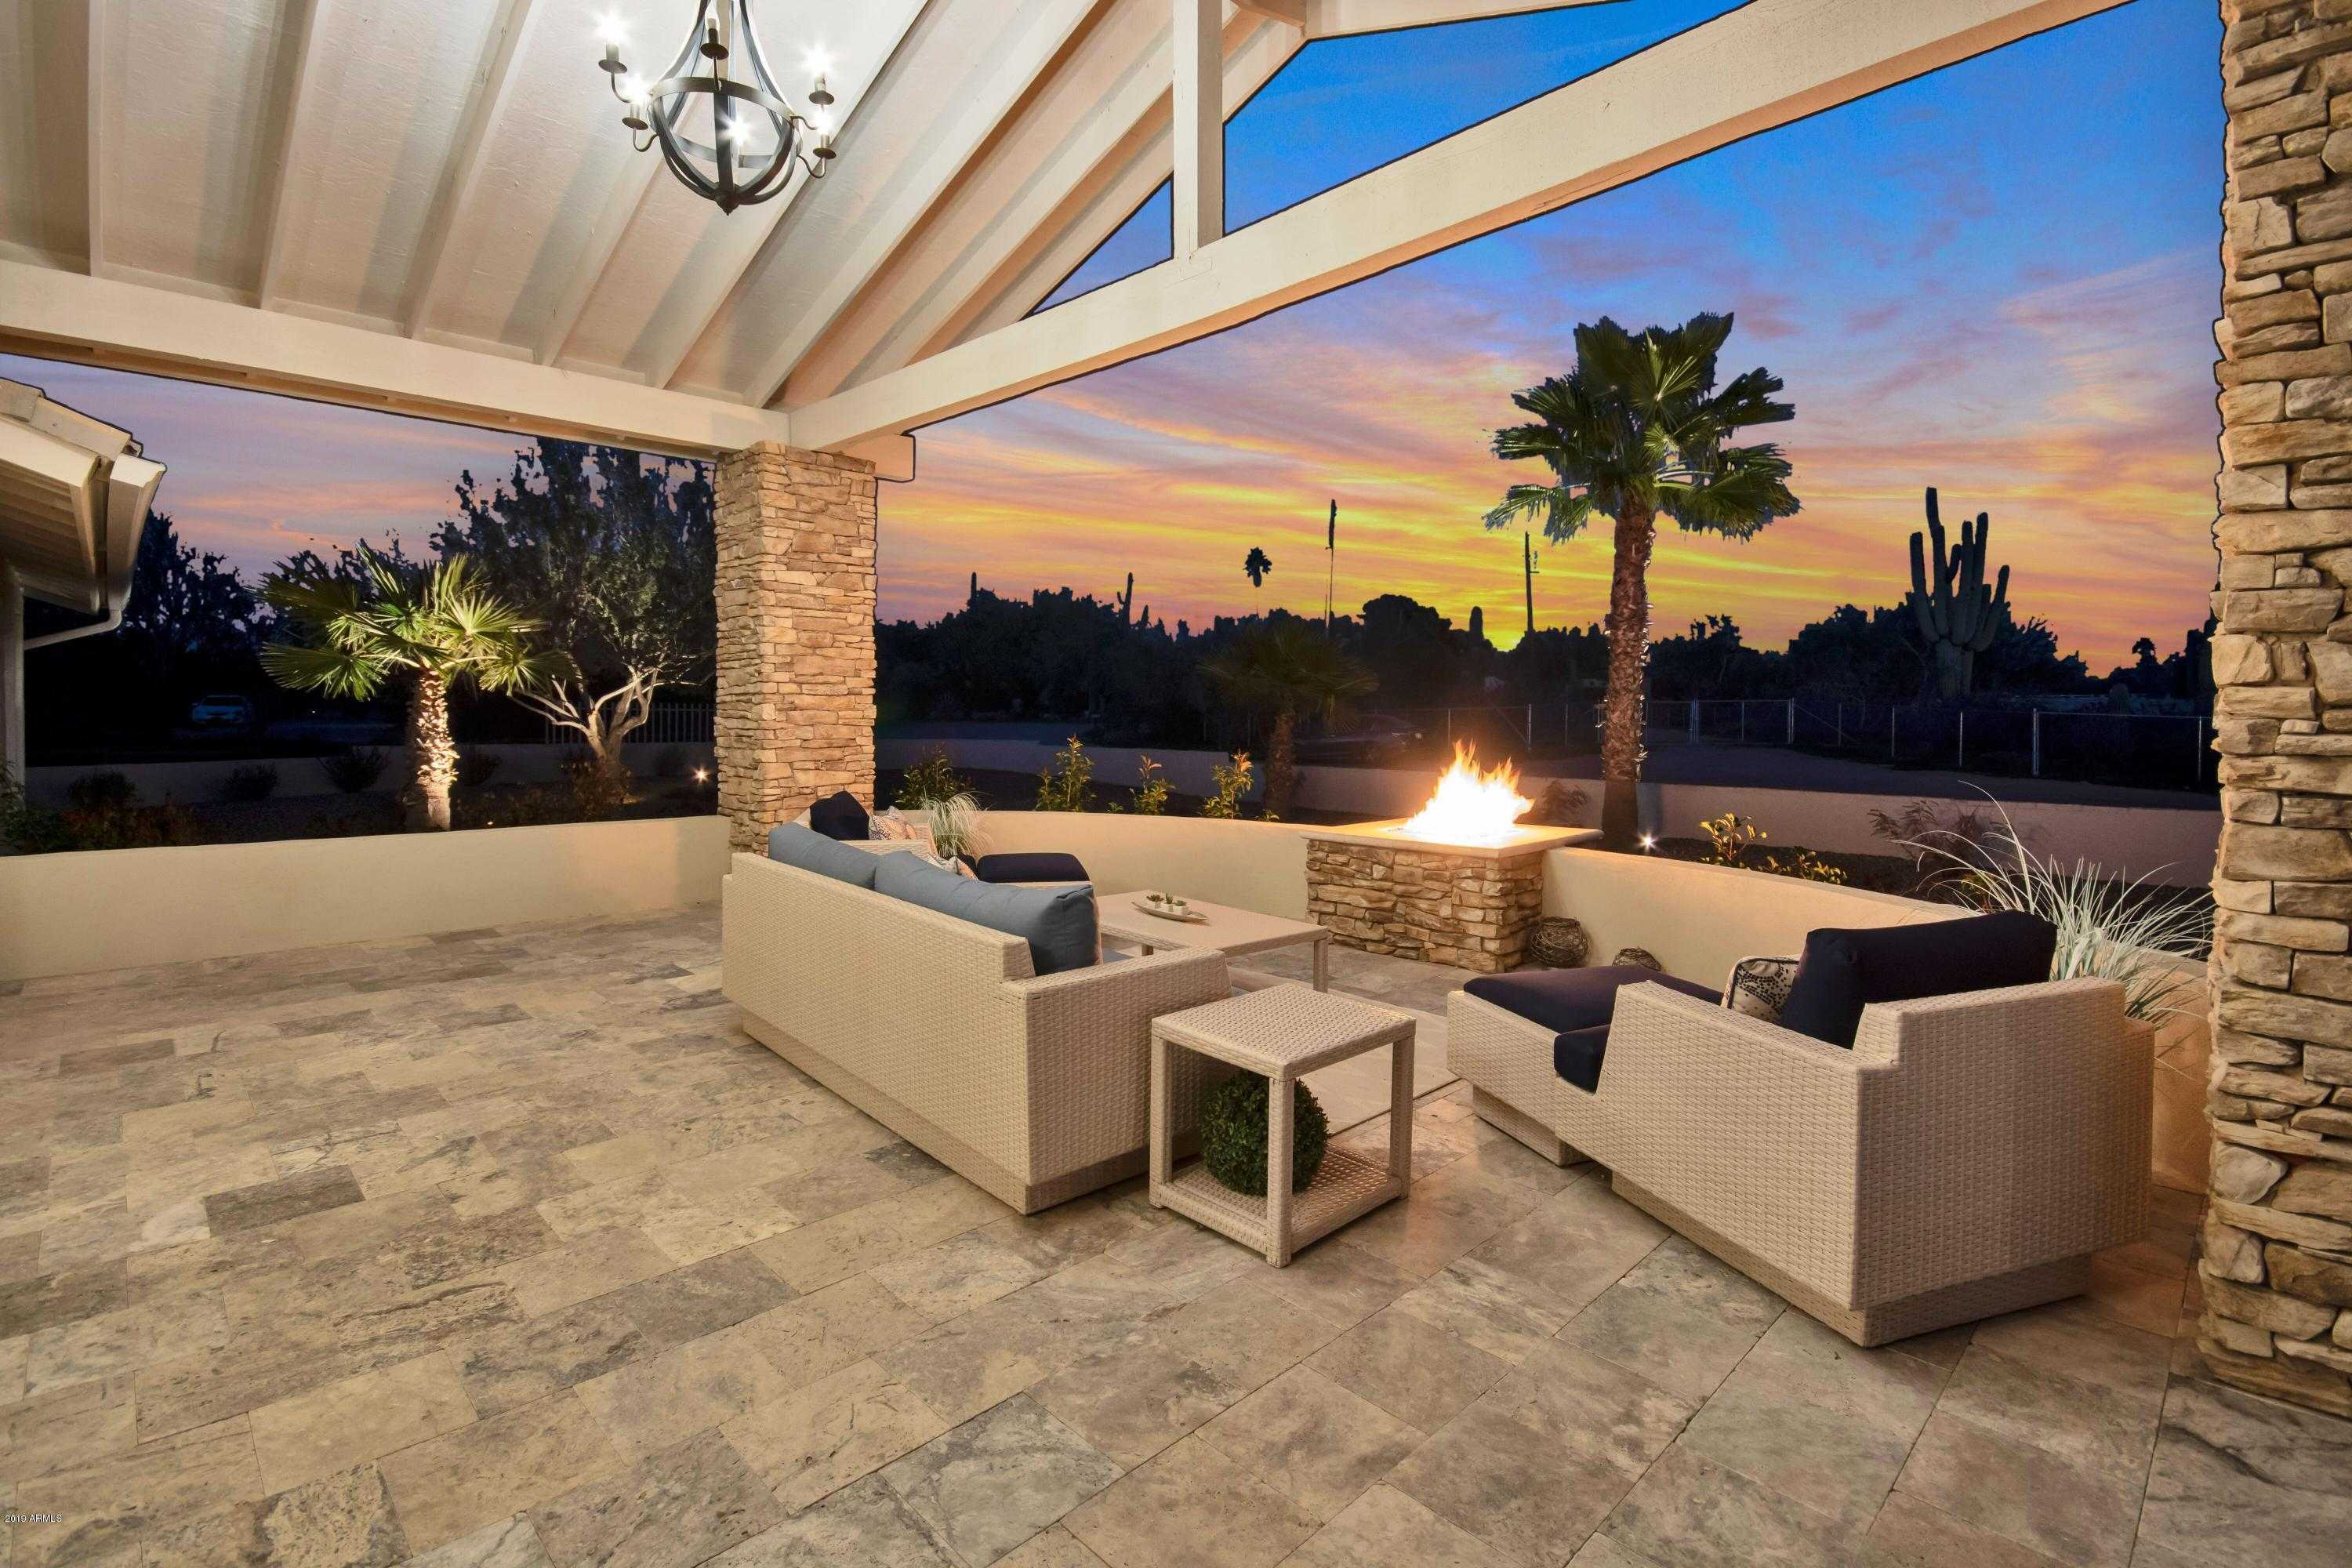 $799,900 - 5Br/6Ba - Home for Sale in No Hoa, Cave Creek